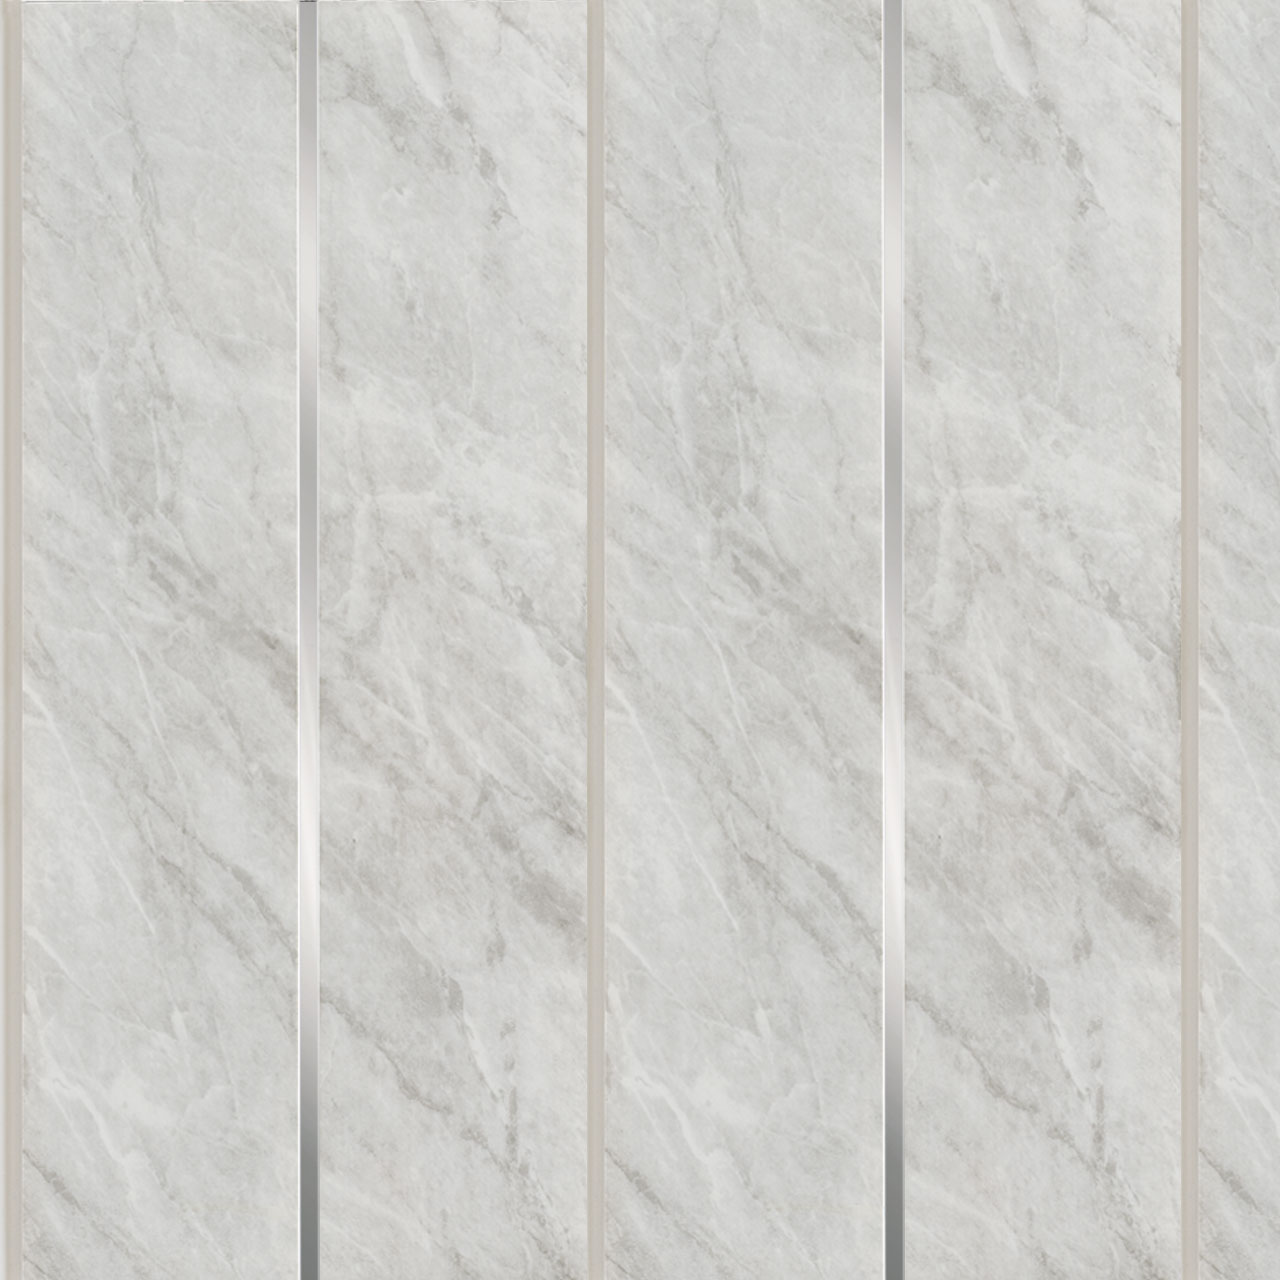 Wholesale Domestic Grey Marble Silver Strip Wall & Ceiling Panels 200x2700x6mm 5 Pack